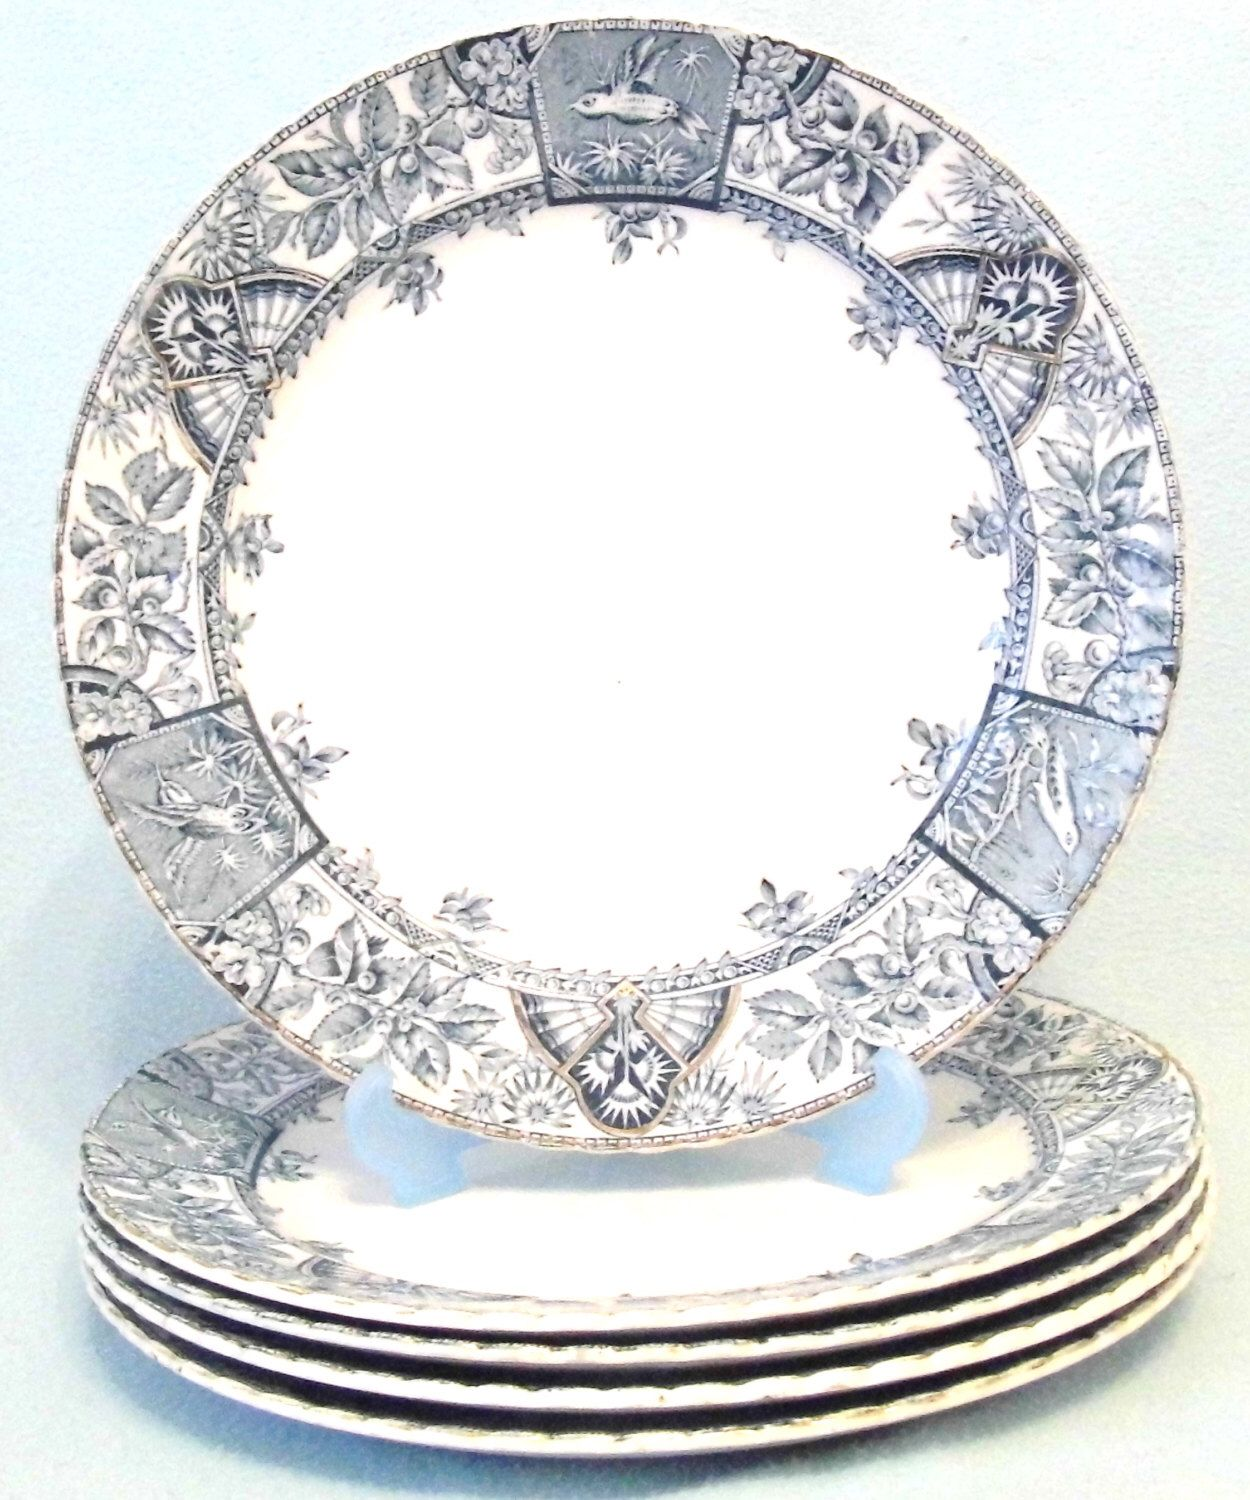 Antique Victorian Aesthetic Movement Blue and White Dinner Plates Set of Five Bird and Floral Design Decorative Pieces Five Plates Old  sc 1 st  Pinterest & Antique Victorian Aesthetic Movement Blue and White Dinner Plates ...